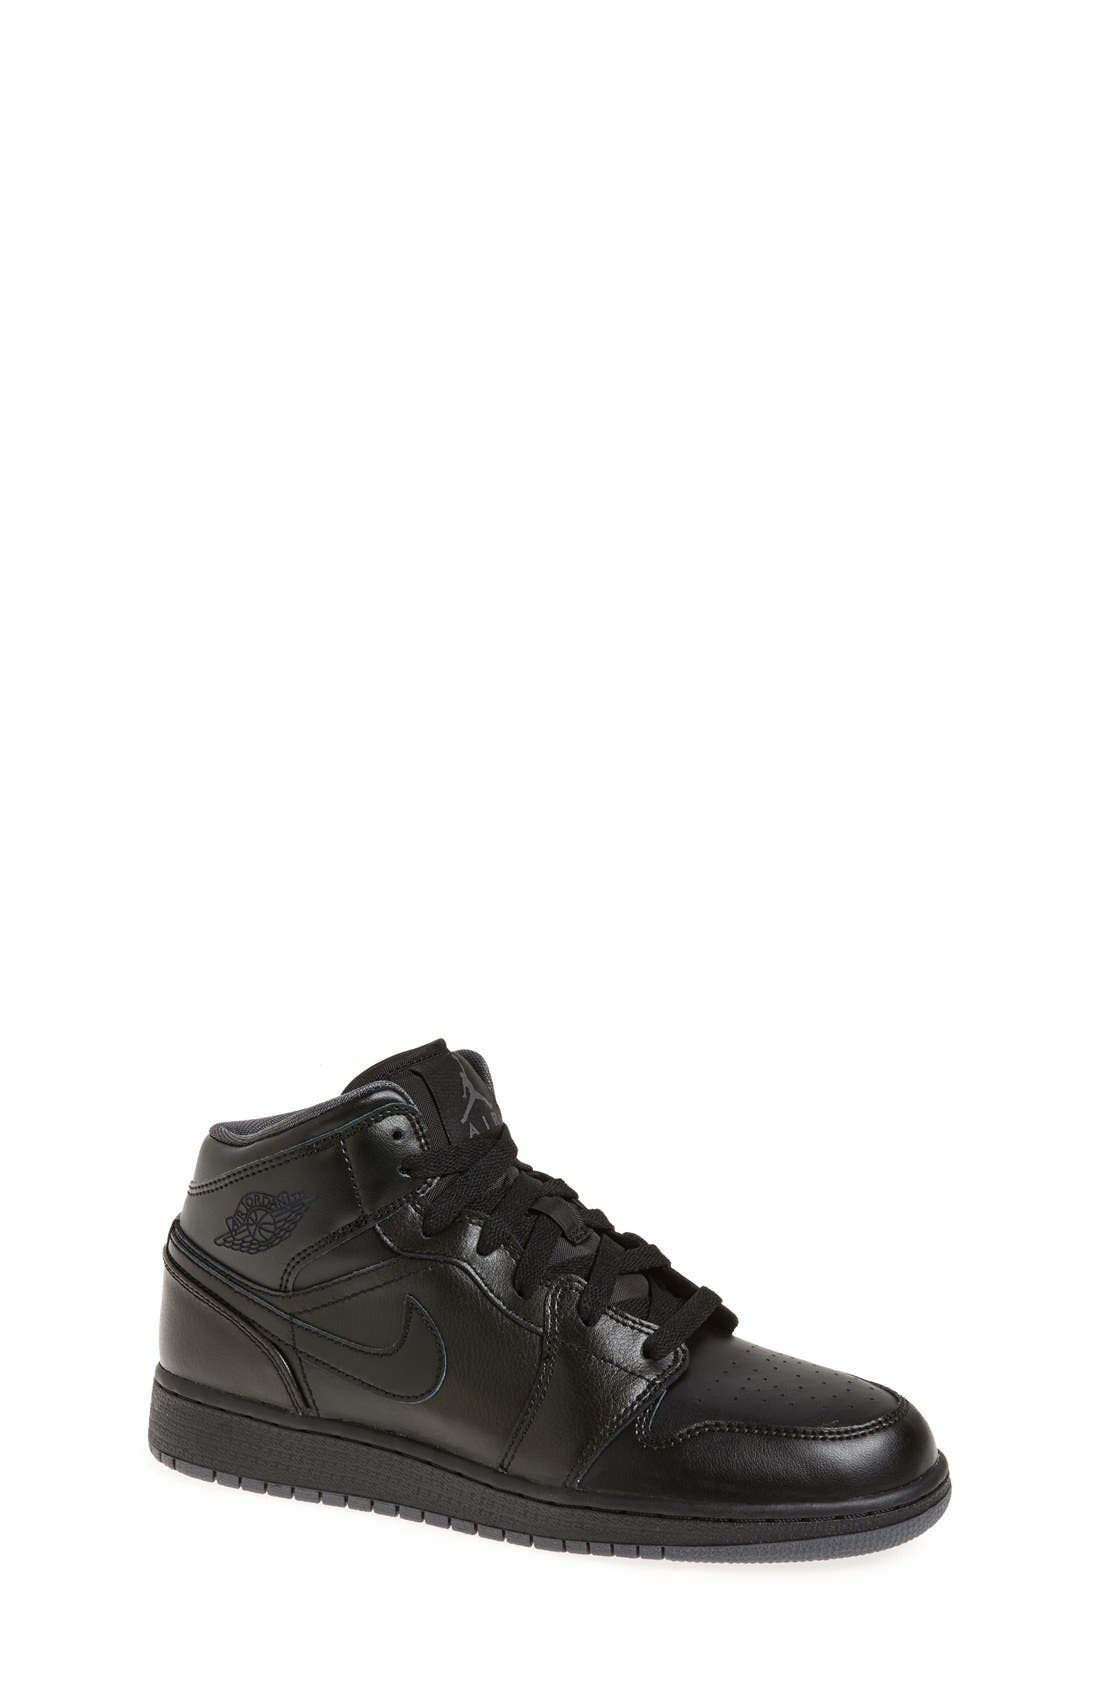 Nike 'Air Jordan 1 Mid' Sneaker,                             Main thumbnail 1, color,                             Black/ Black